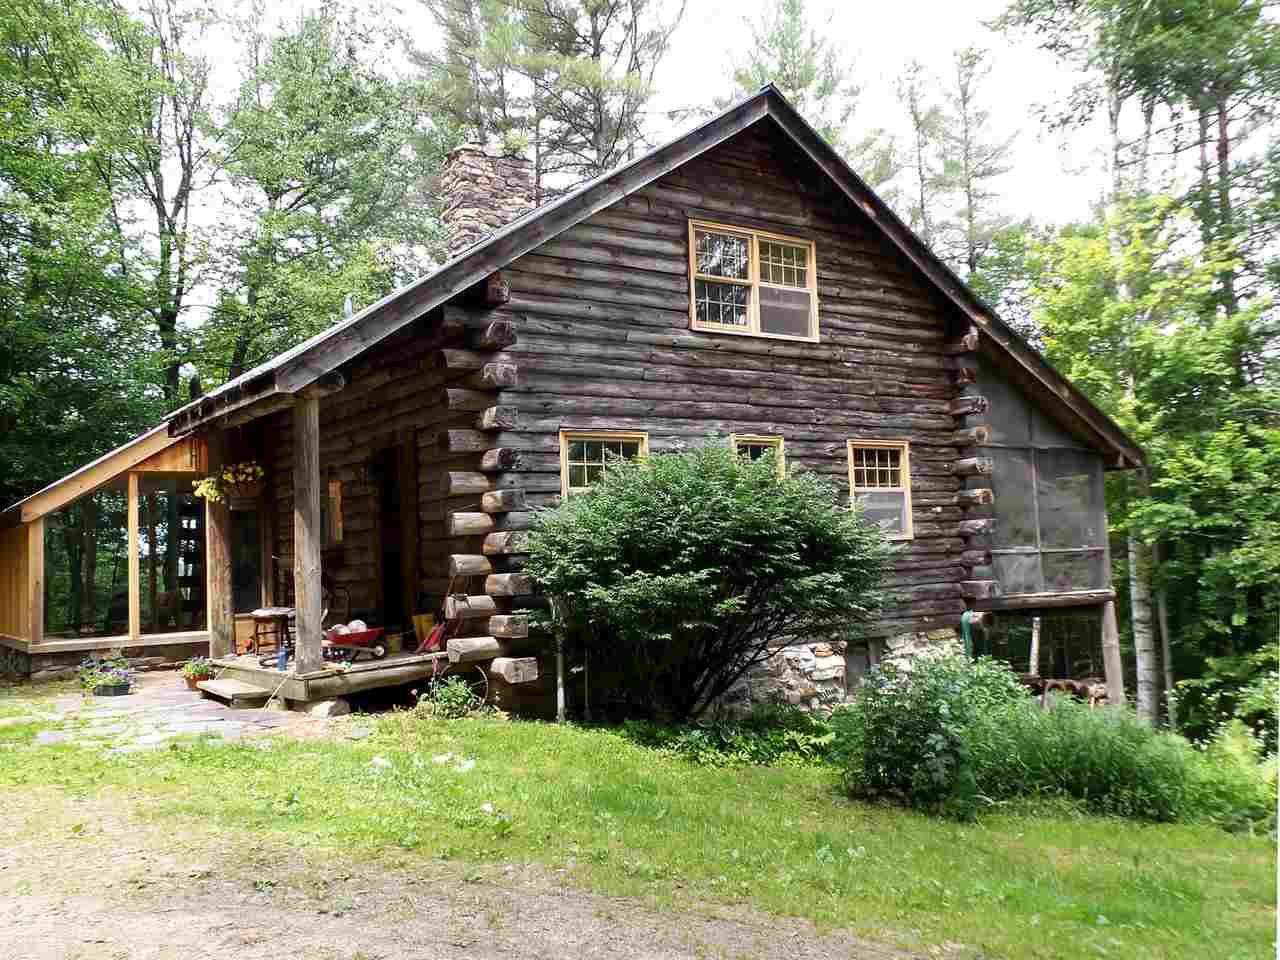 Small Property For Sale In Nh